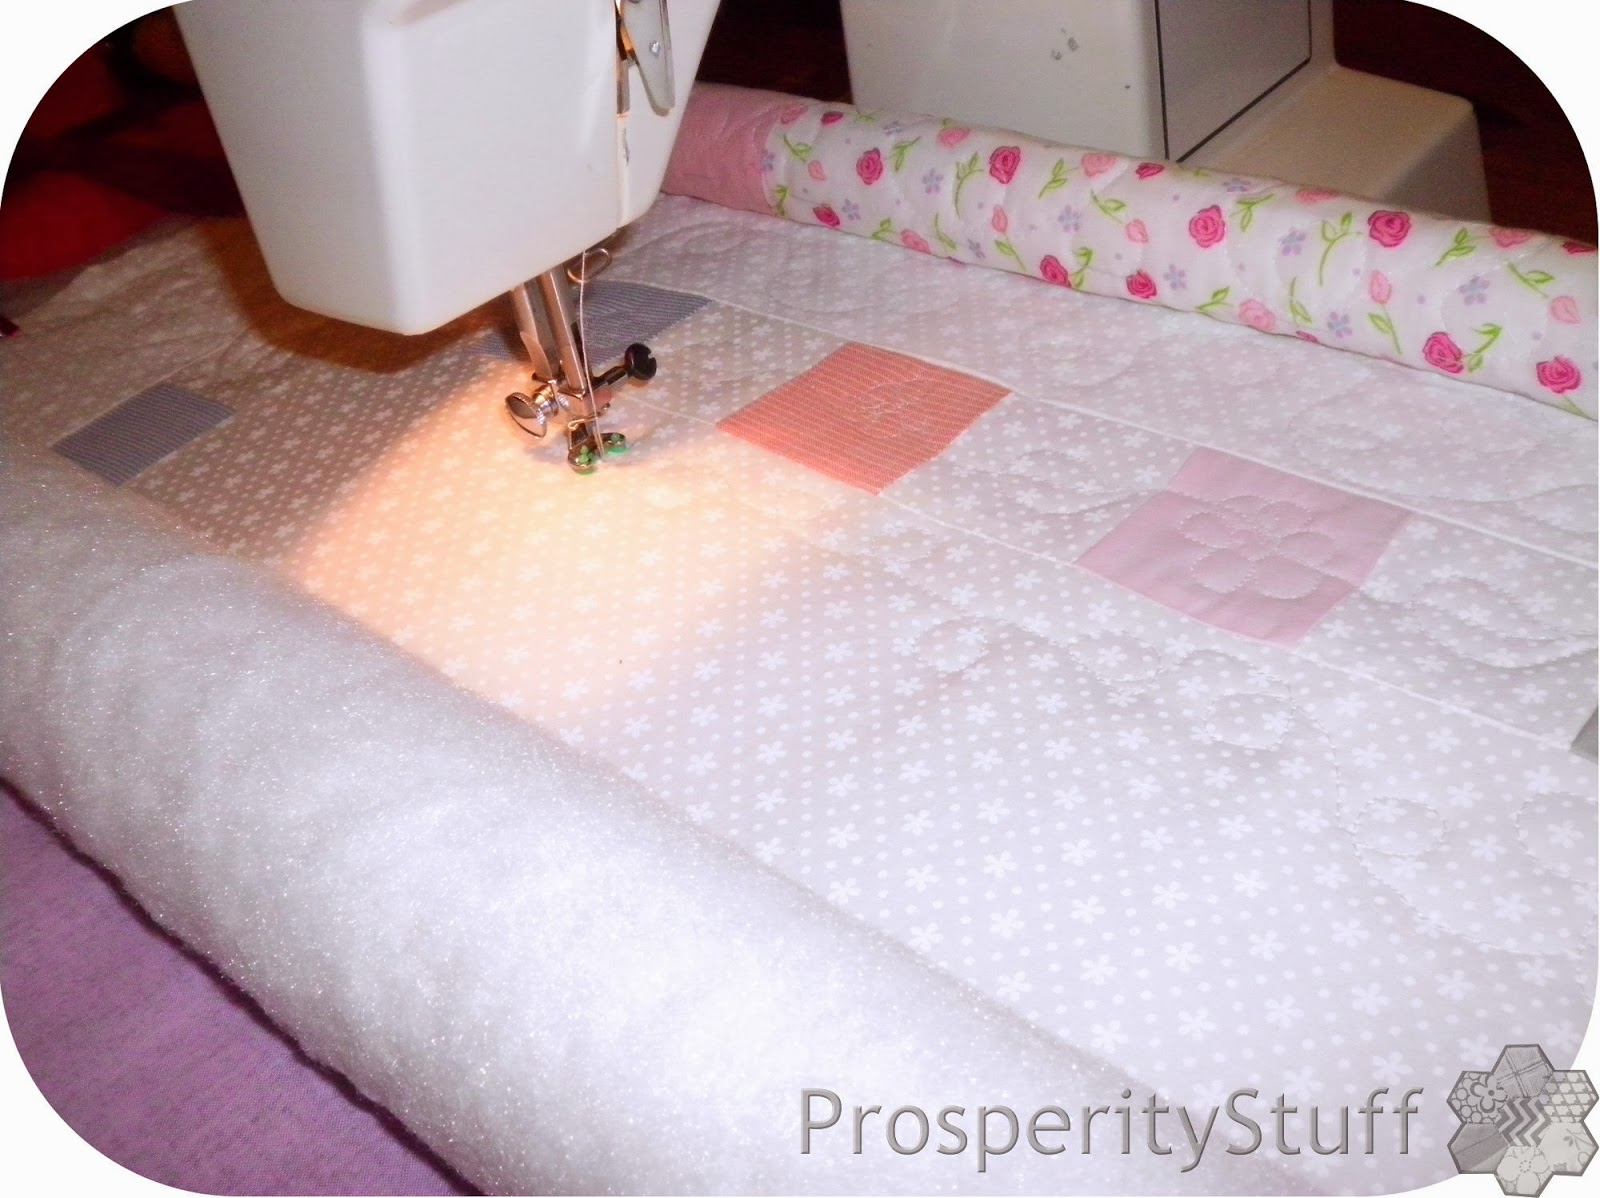 ProsperityStuff Quilts: January 2014